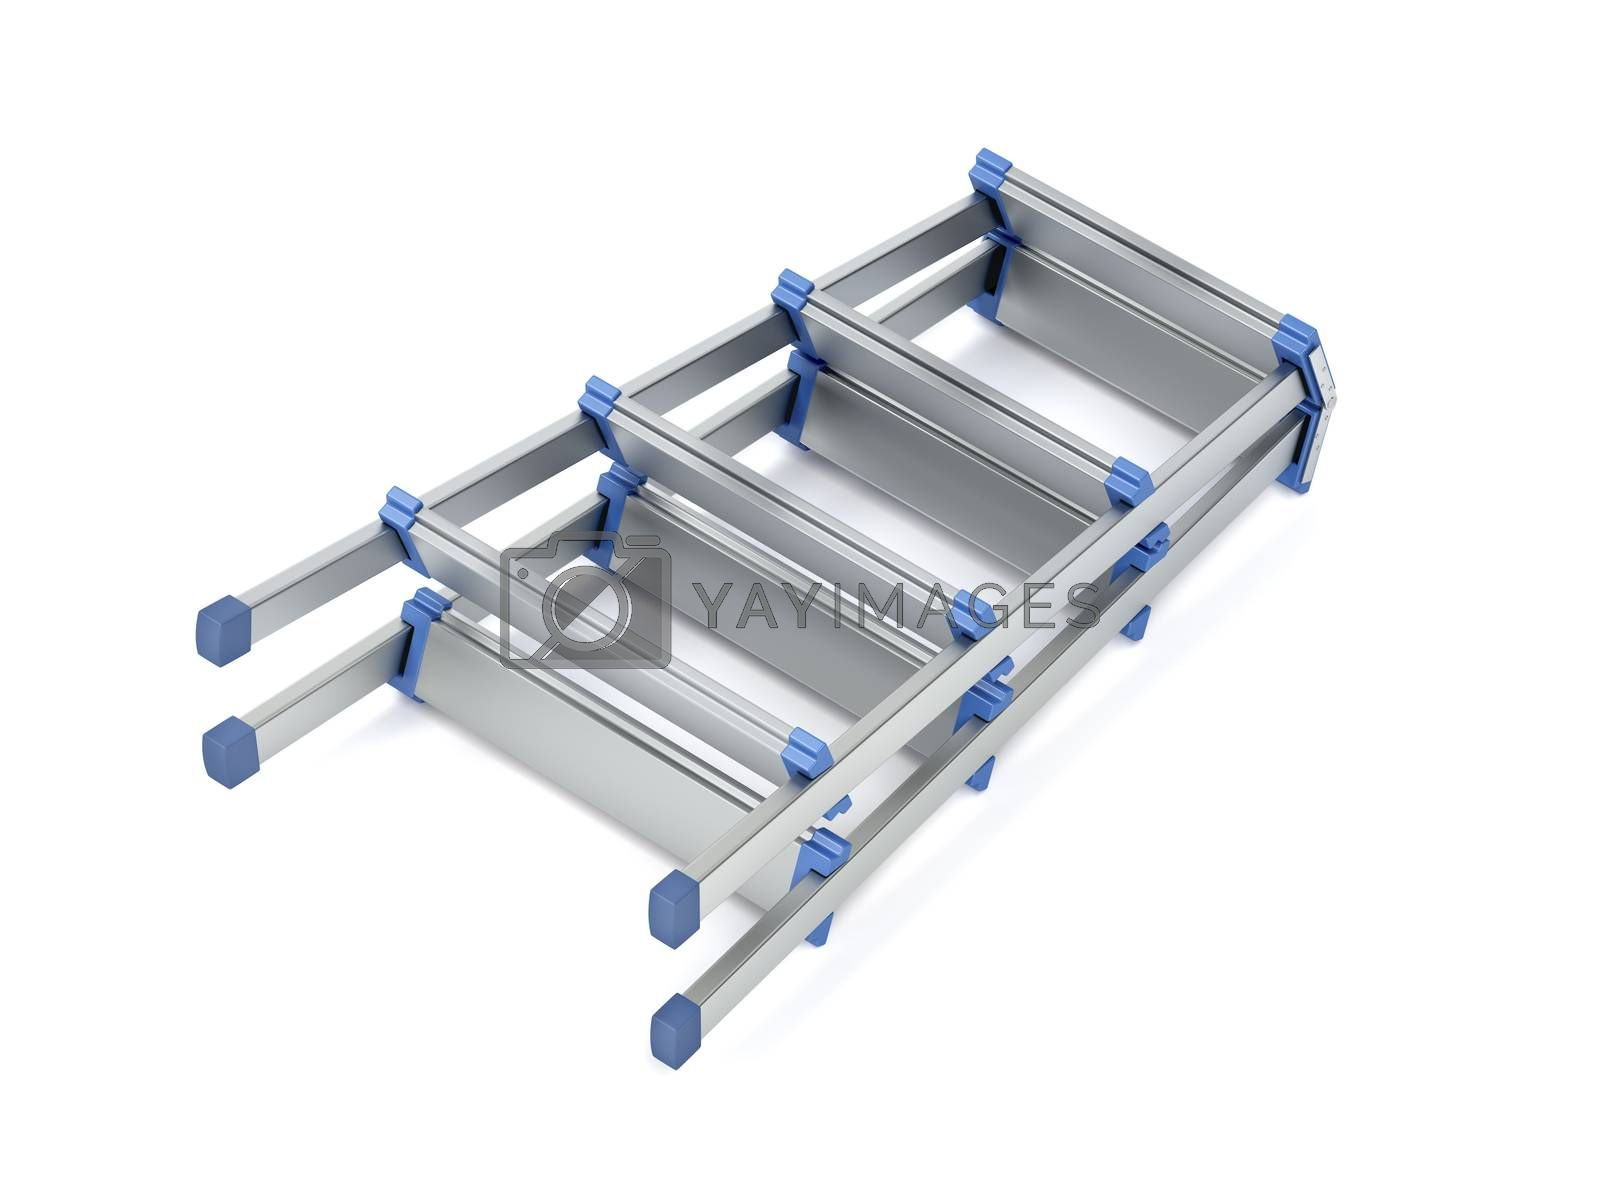 Foldable aluminum stepladder on white background